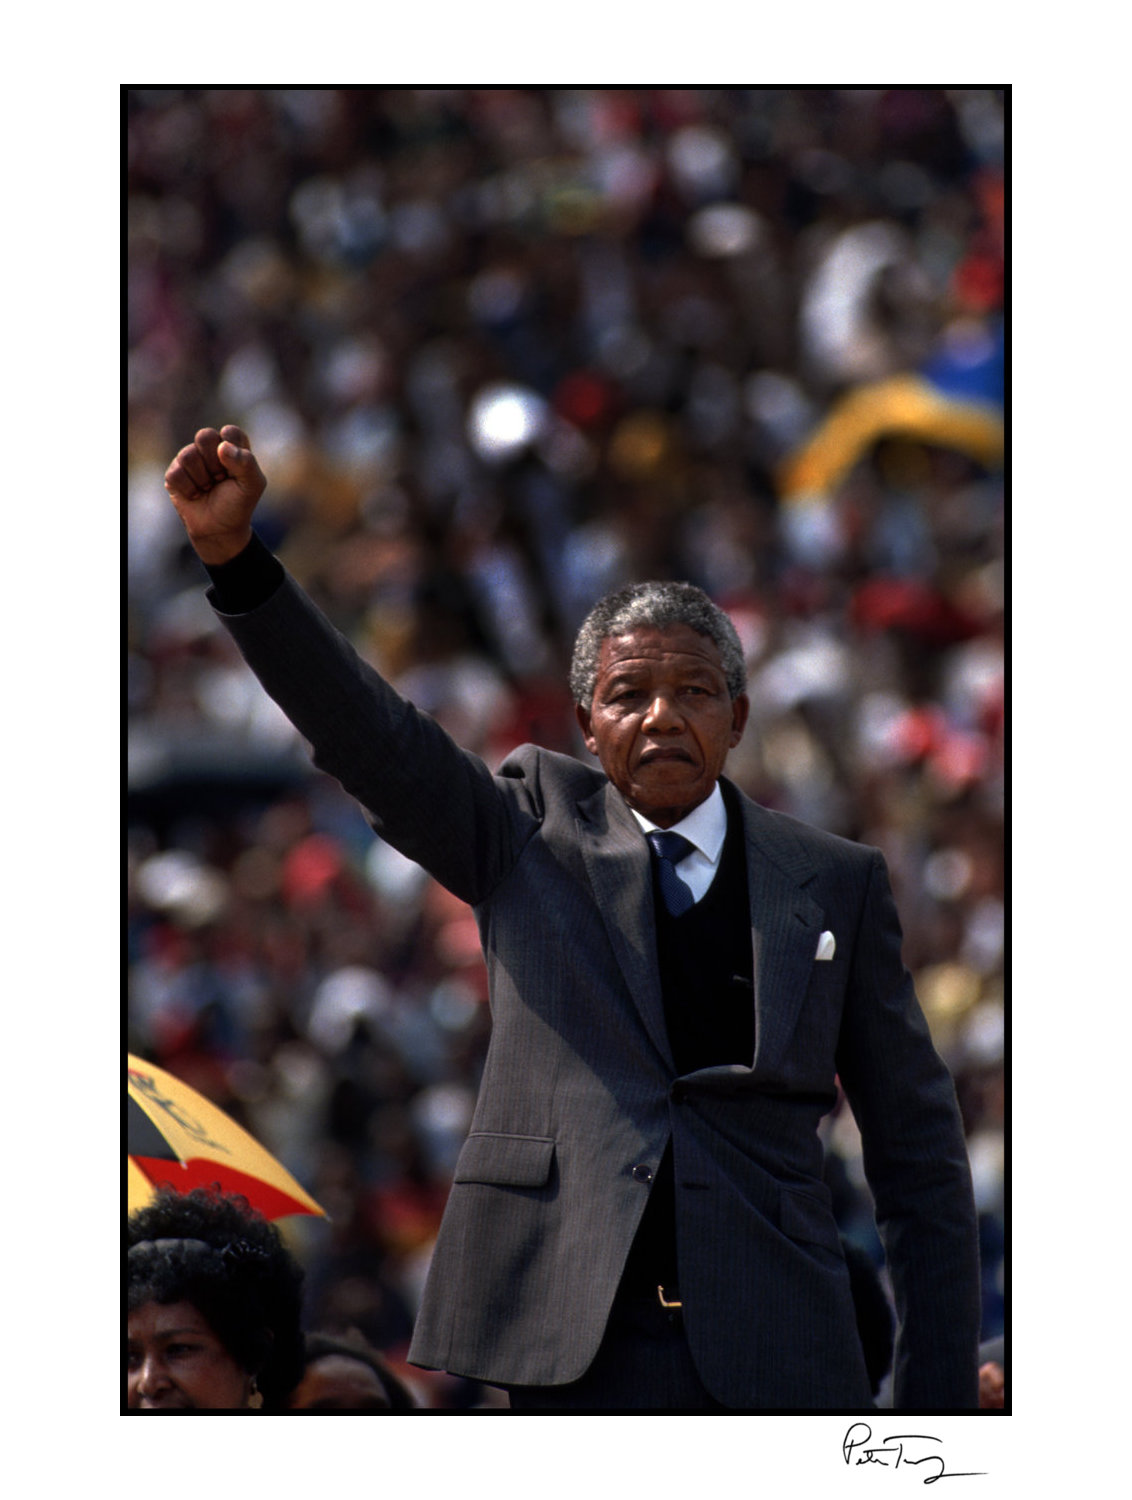 """ID #52・Nelson Mandela, 1990<span class=""""print-link""""><span class=""""separator"""">・</span><a onclick='document.getElementsByClassName(""""sqs-lightbox-close"""")[0].click();'>Thumbnails</a></span>"""